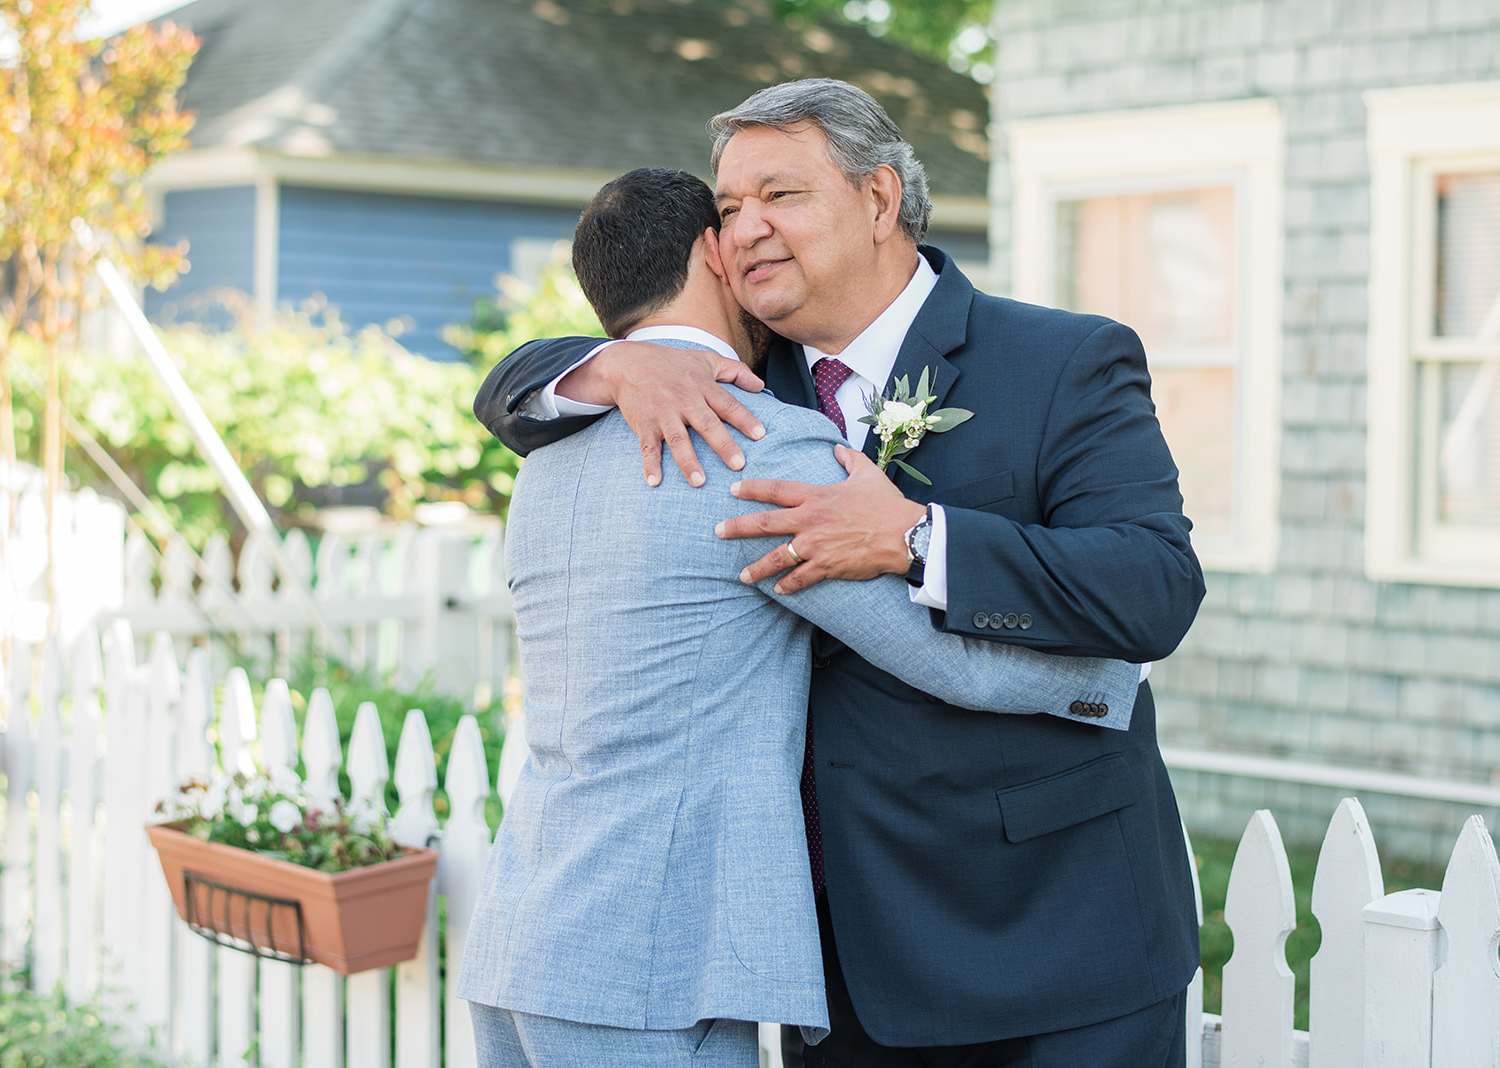 groom hugging his father on his wedding day